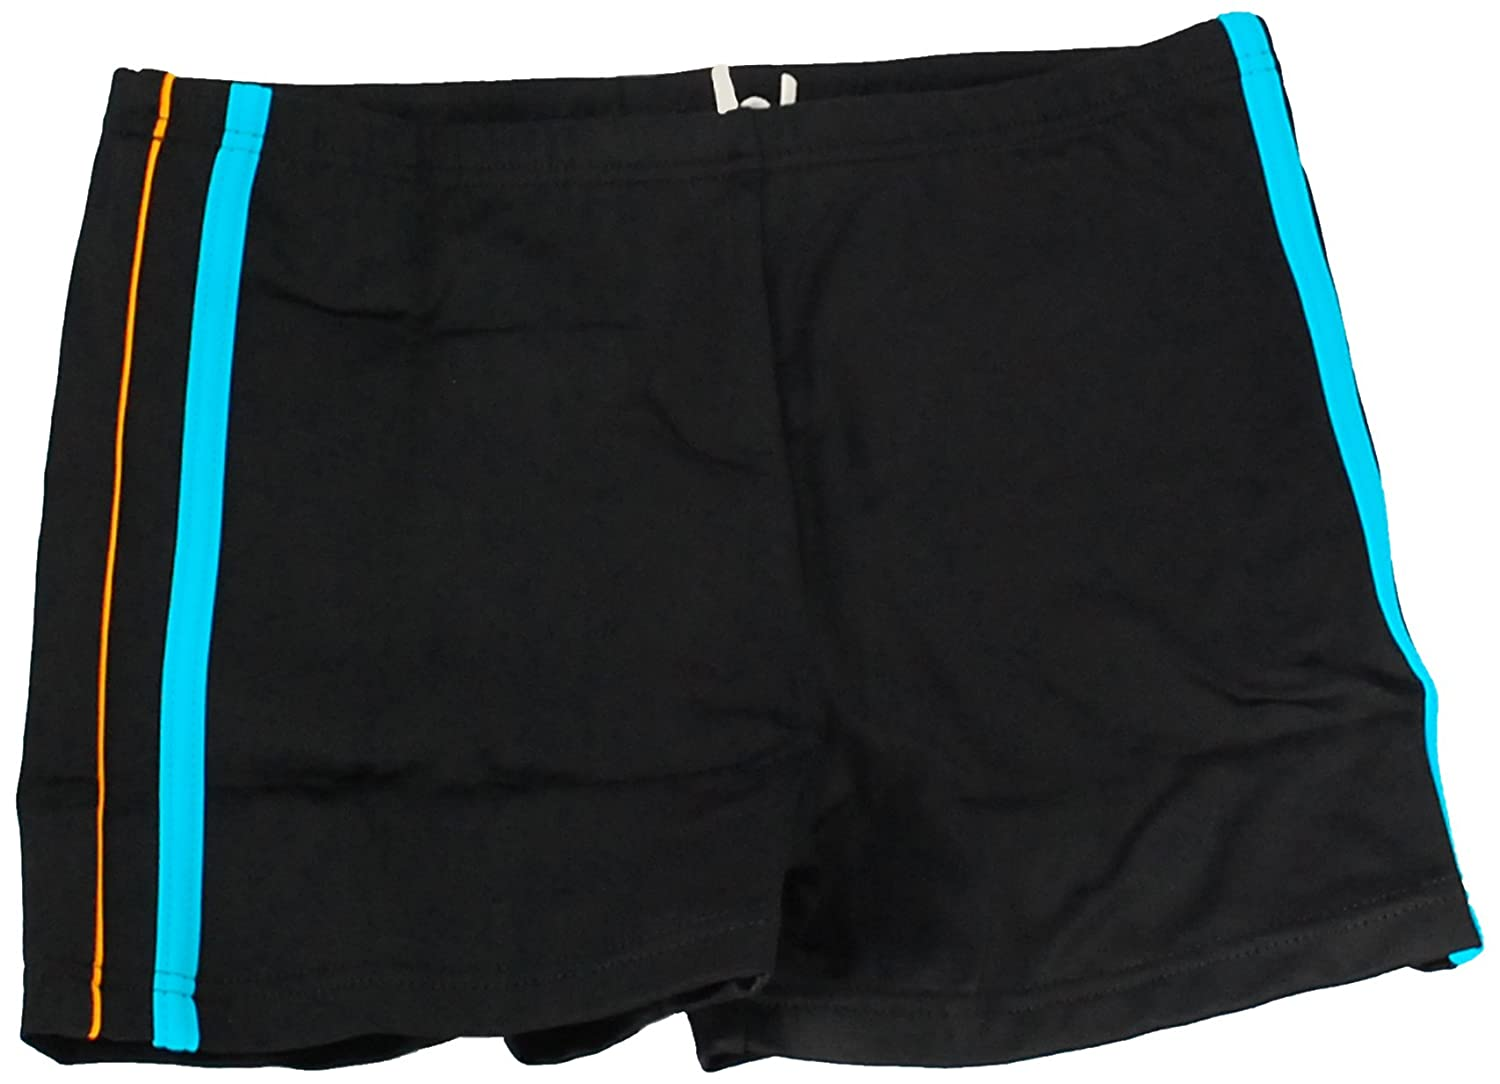 Fashy 24008 Boys' Swimming Trunks